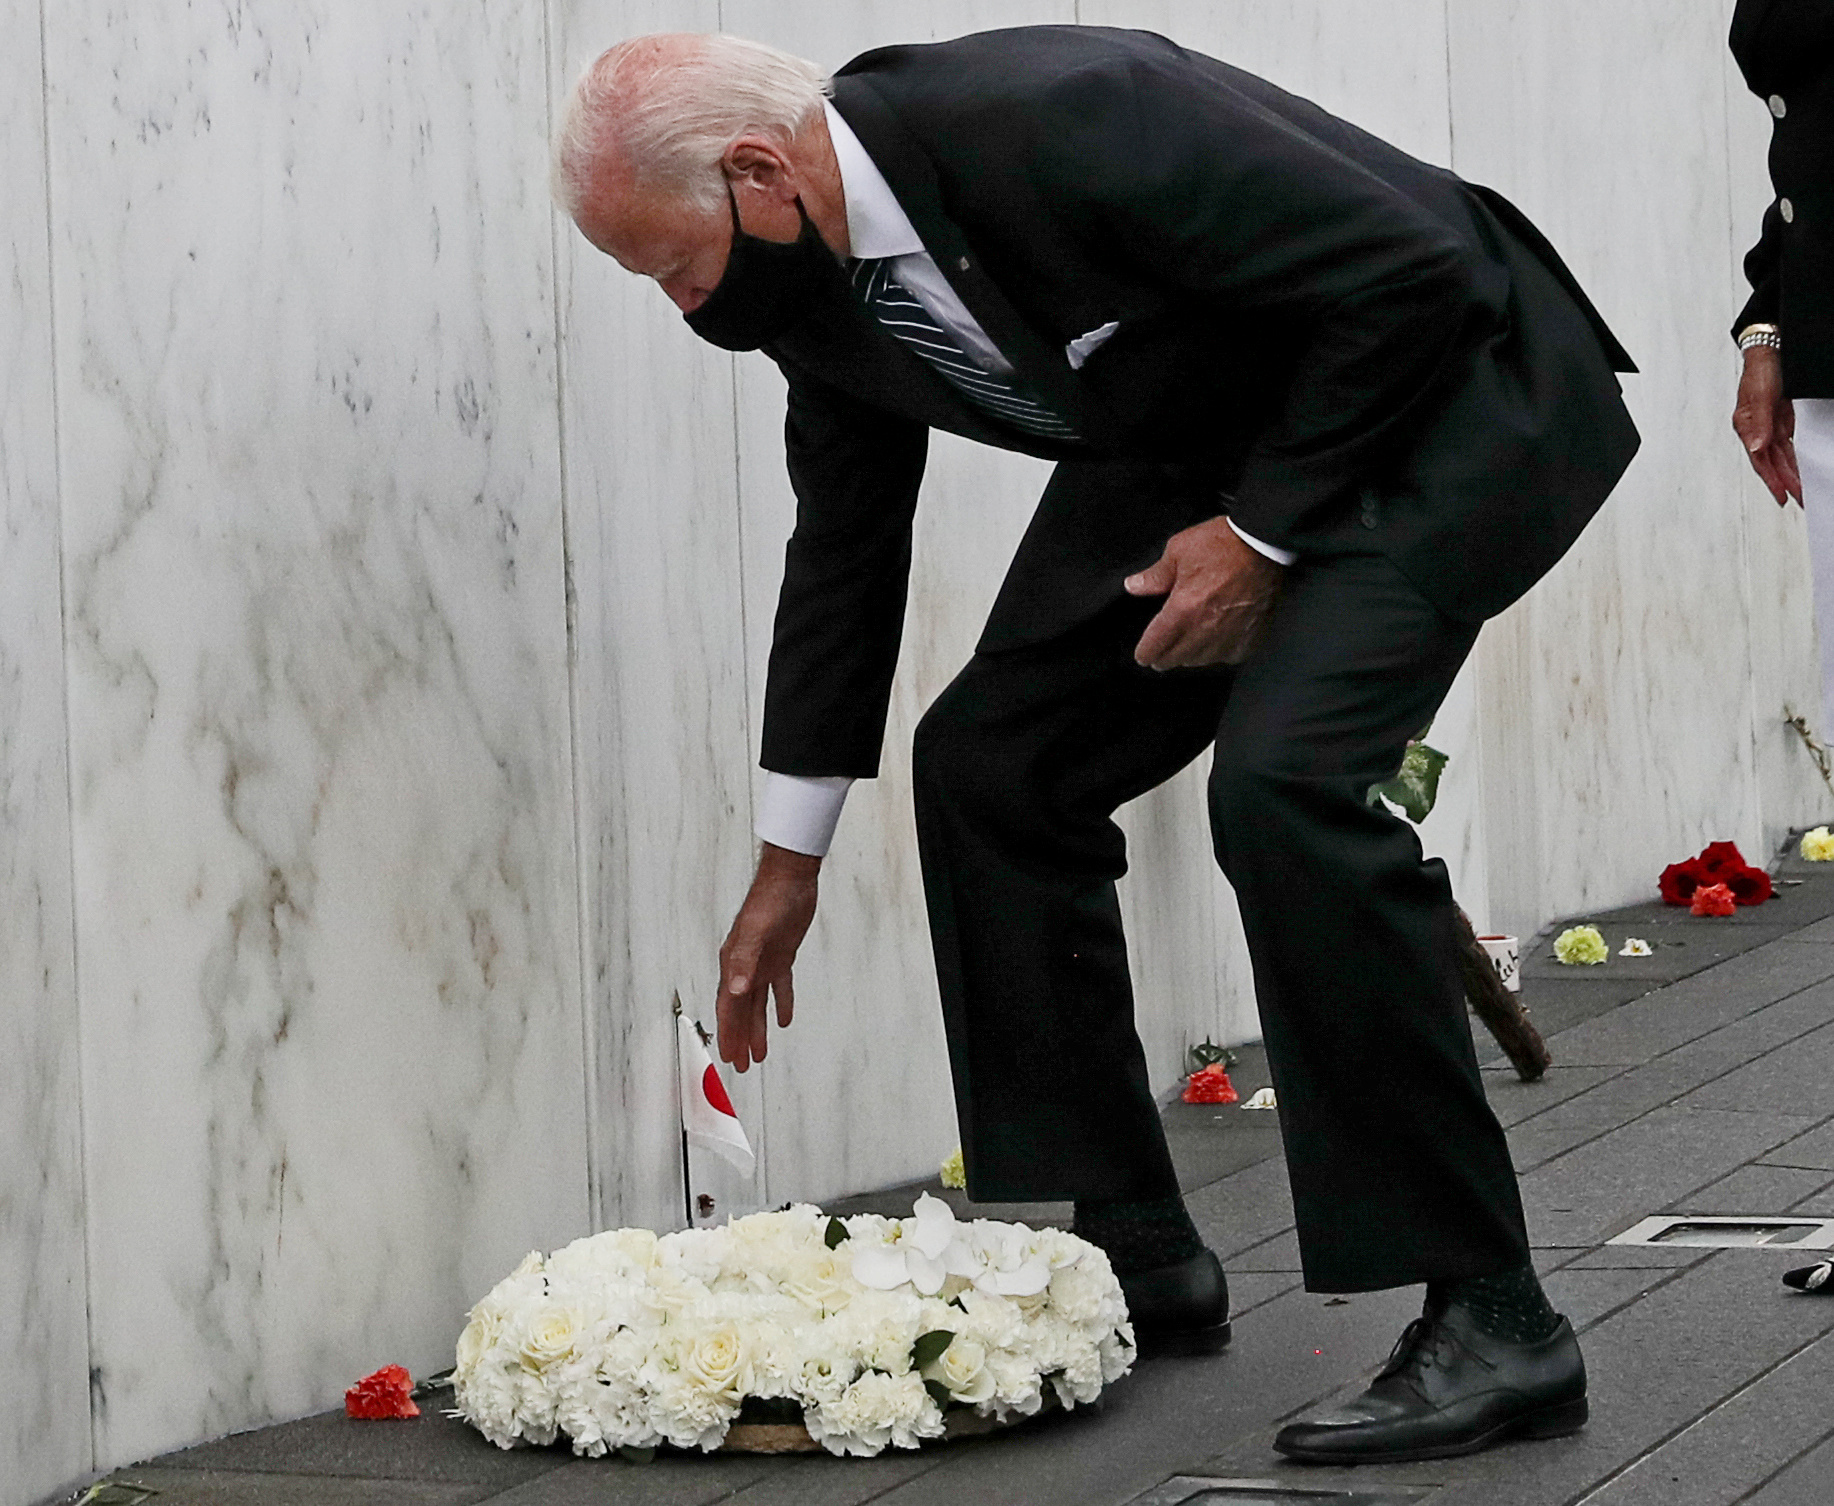 Democratic U.S. presidential nominee and former Vice President Joe Biden lays a wreath during a visit to the Flight 93 National Memorial to those killed when hijacked Flight 93 crashed into an open field on September 11, 2001, in Stoystown, Pennsylvania, September 11, 2020. REUTERS/Leah Millis